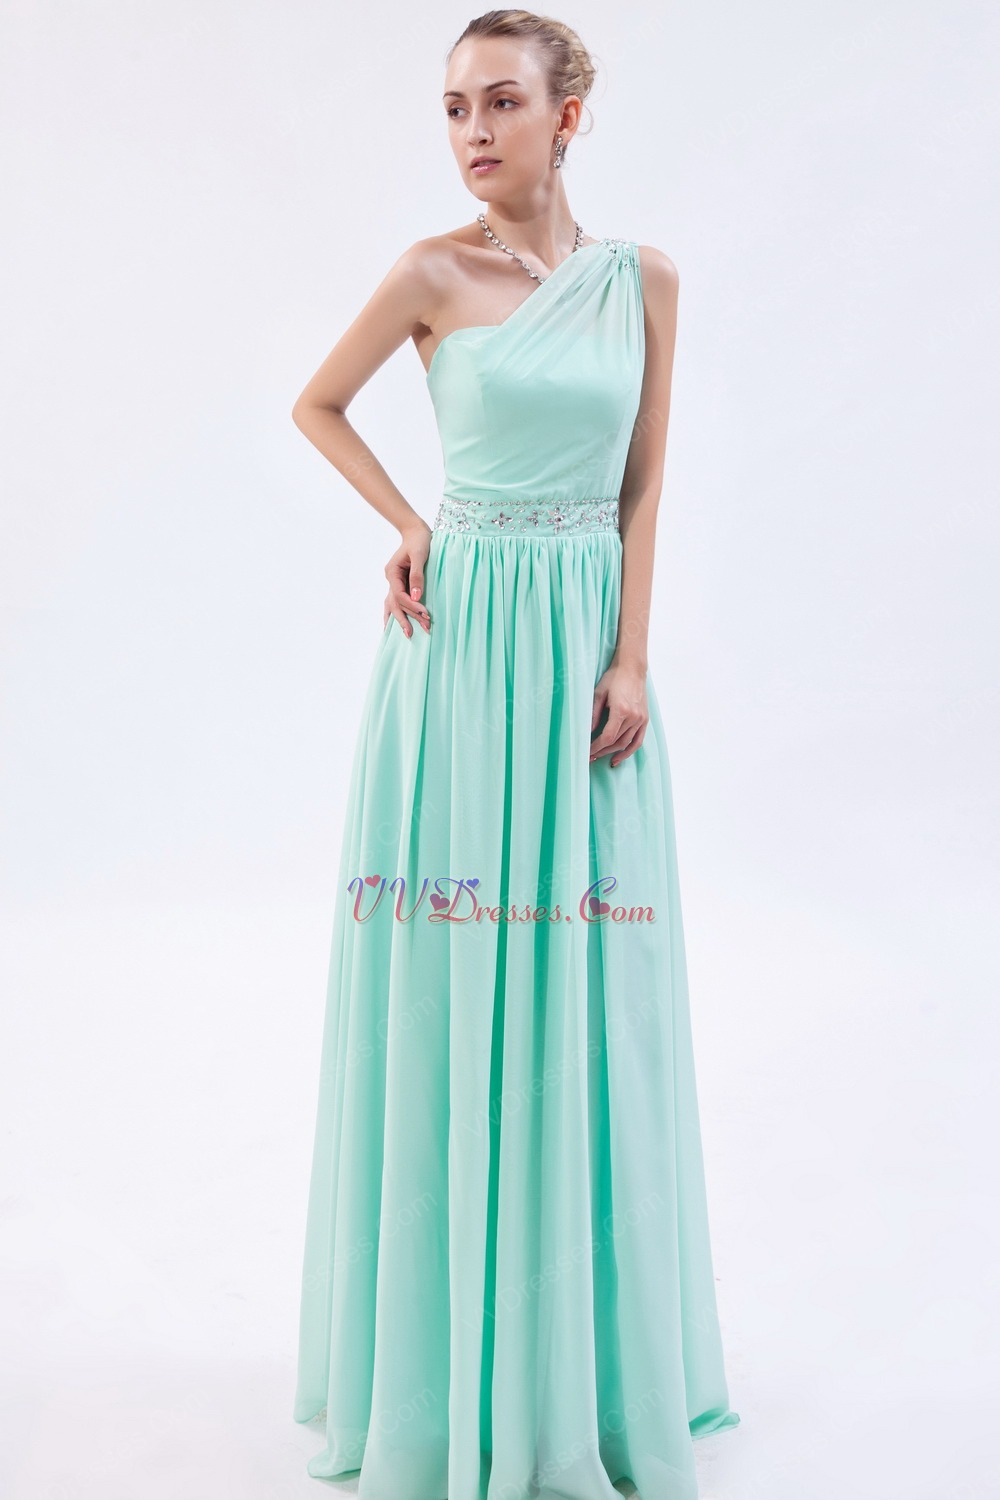 One Shoulder Column Silhouette Light Green Special